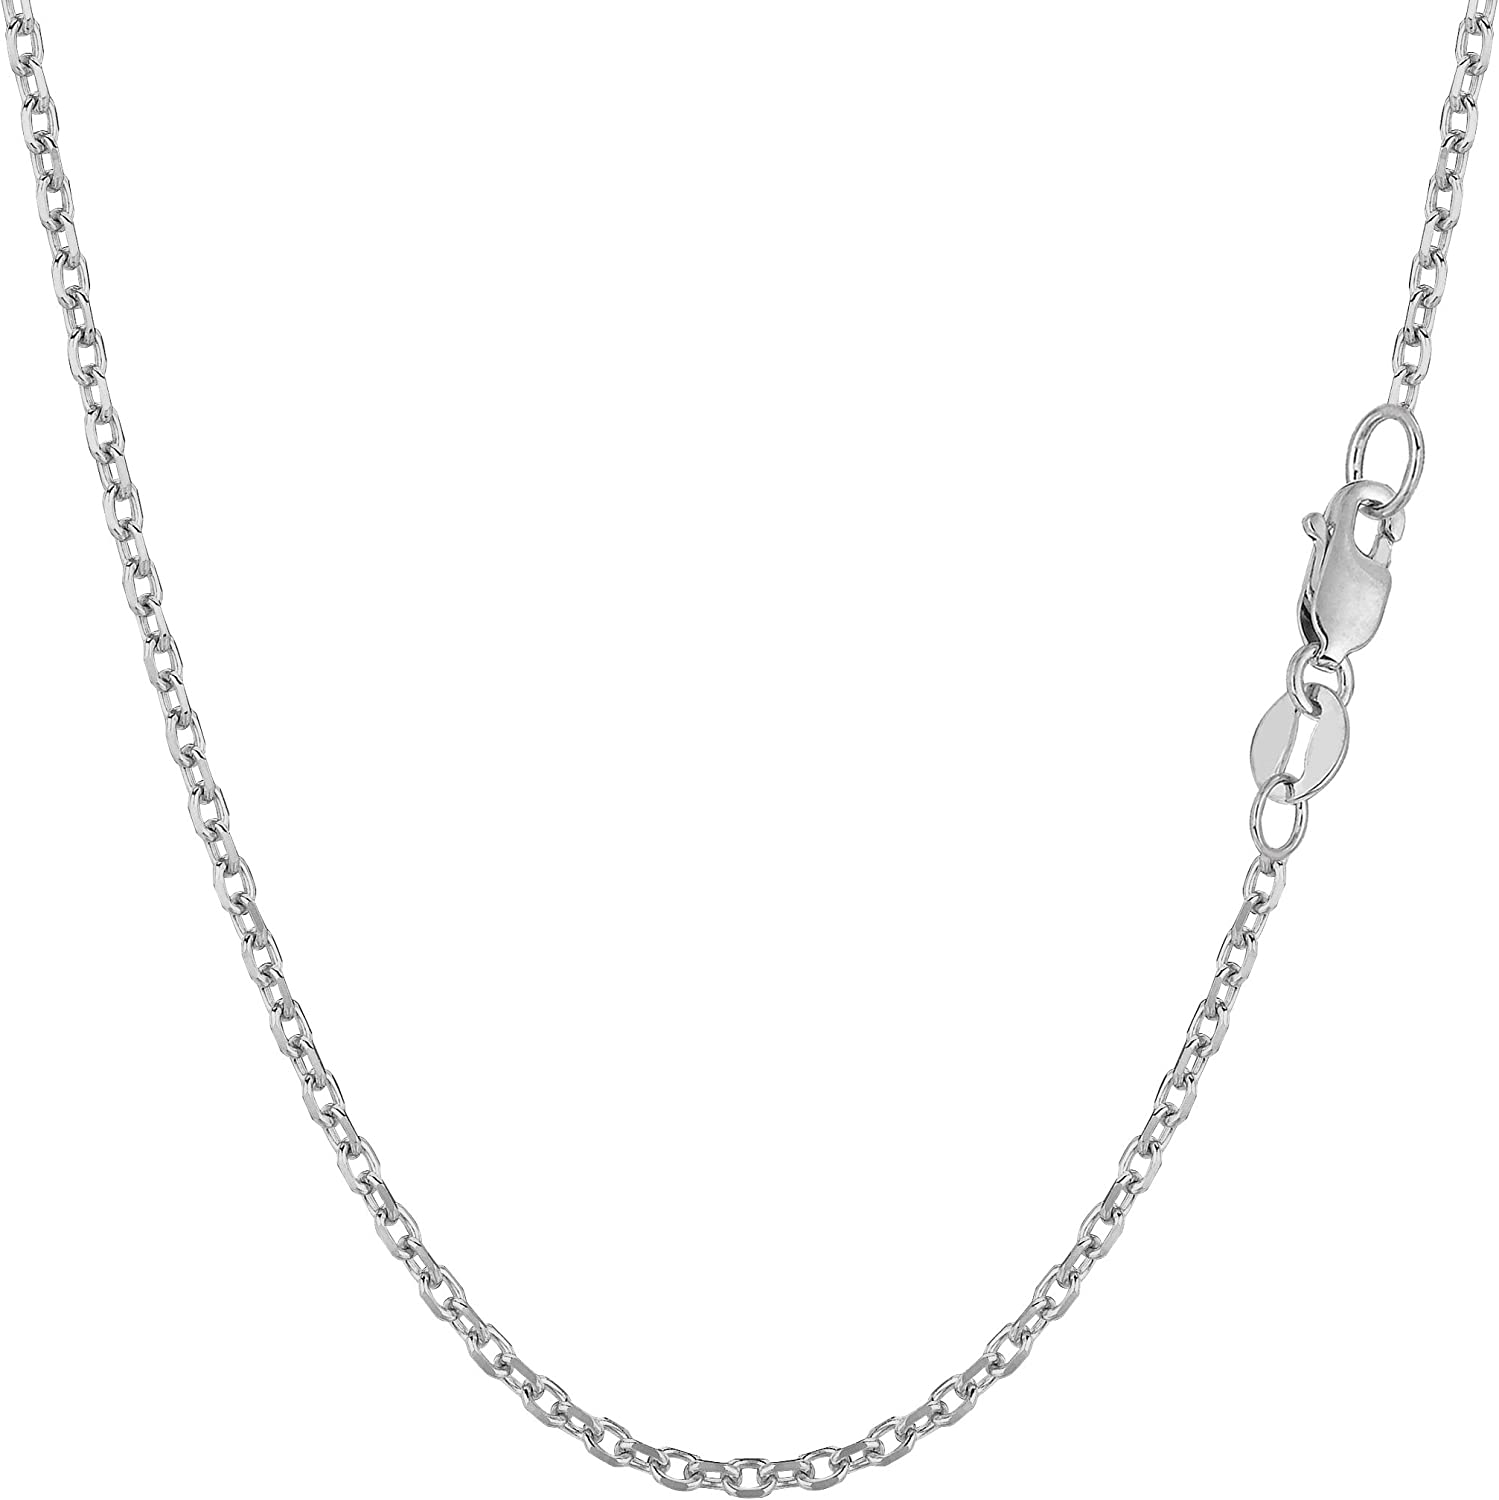 Mireval Sterling Silver Spiga Chain Necklace Collection 16-30